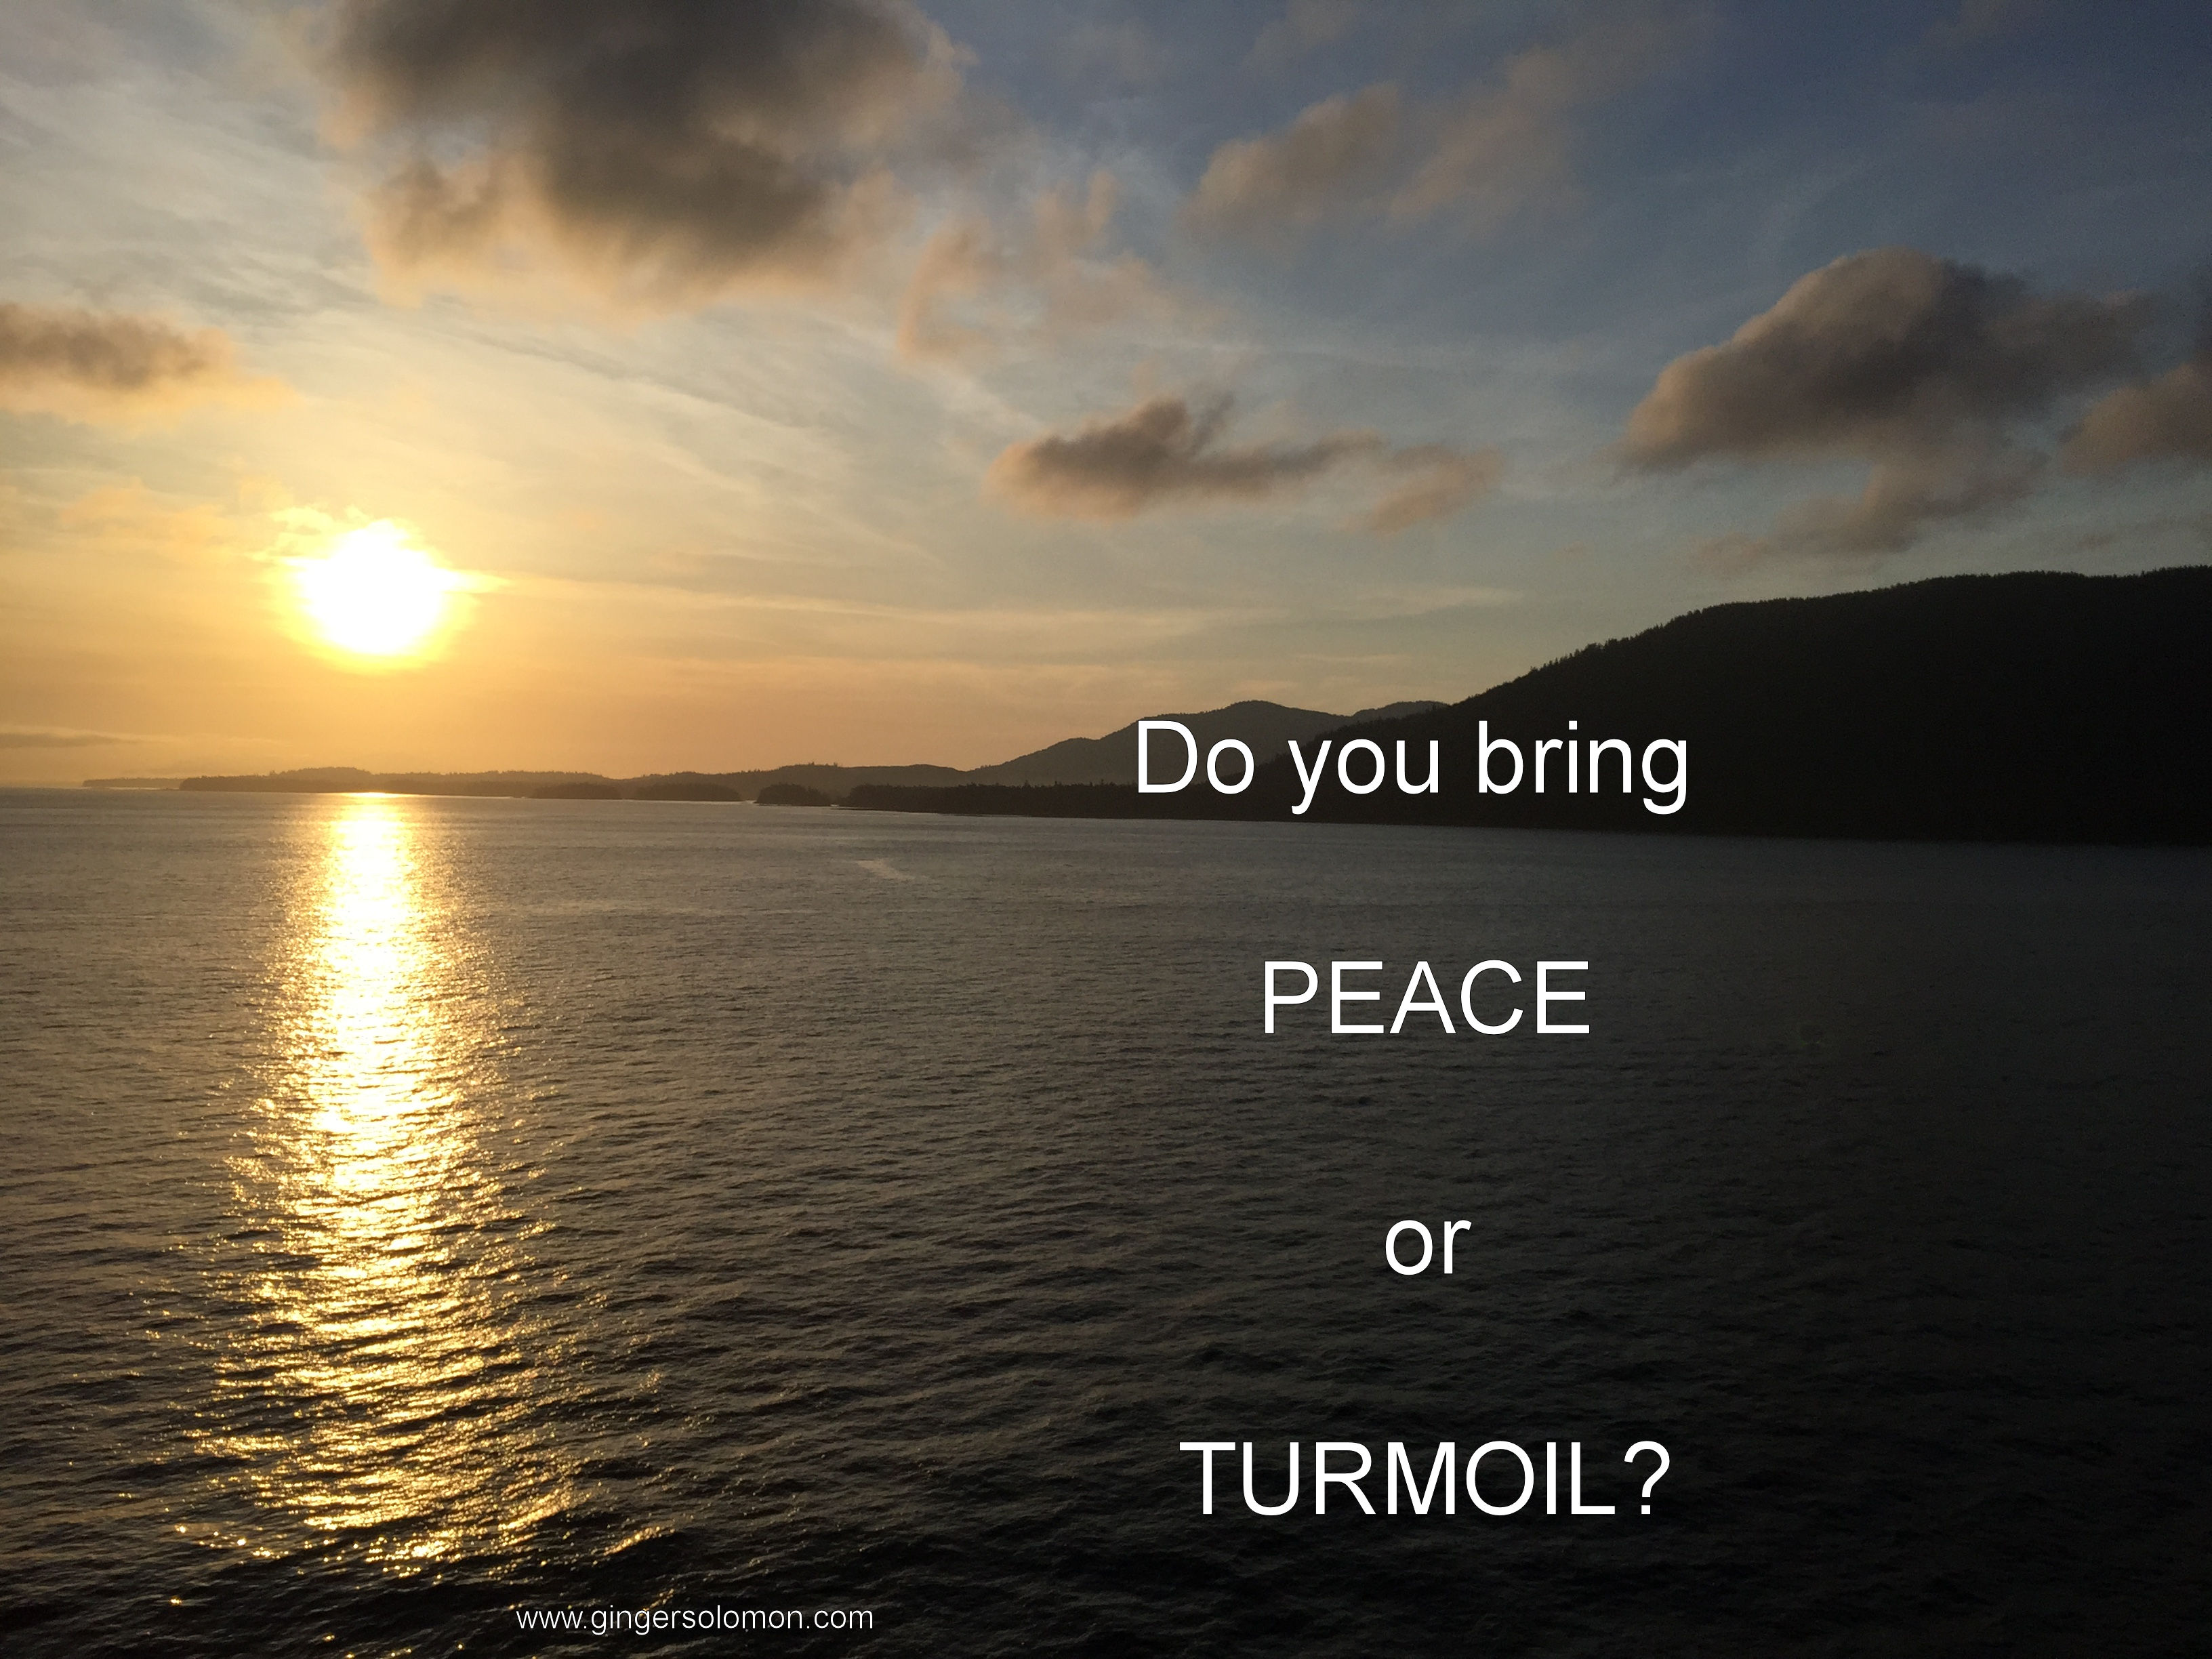 peace or turmoil